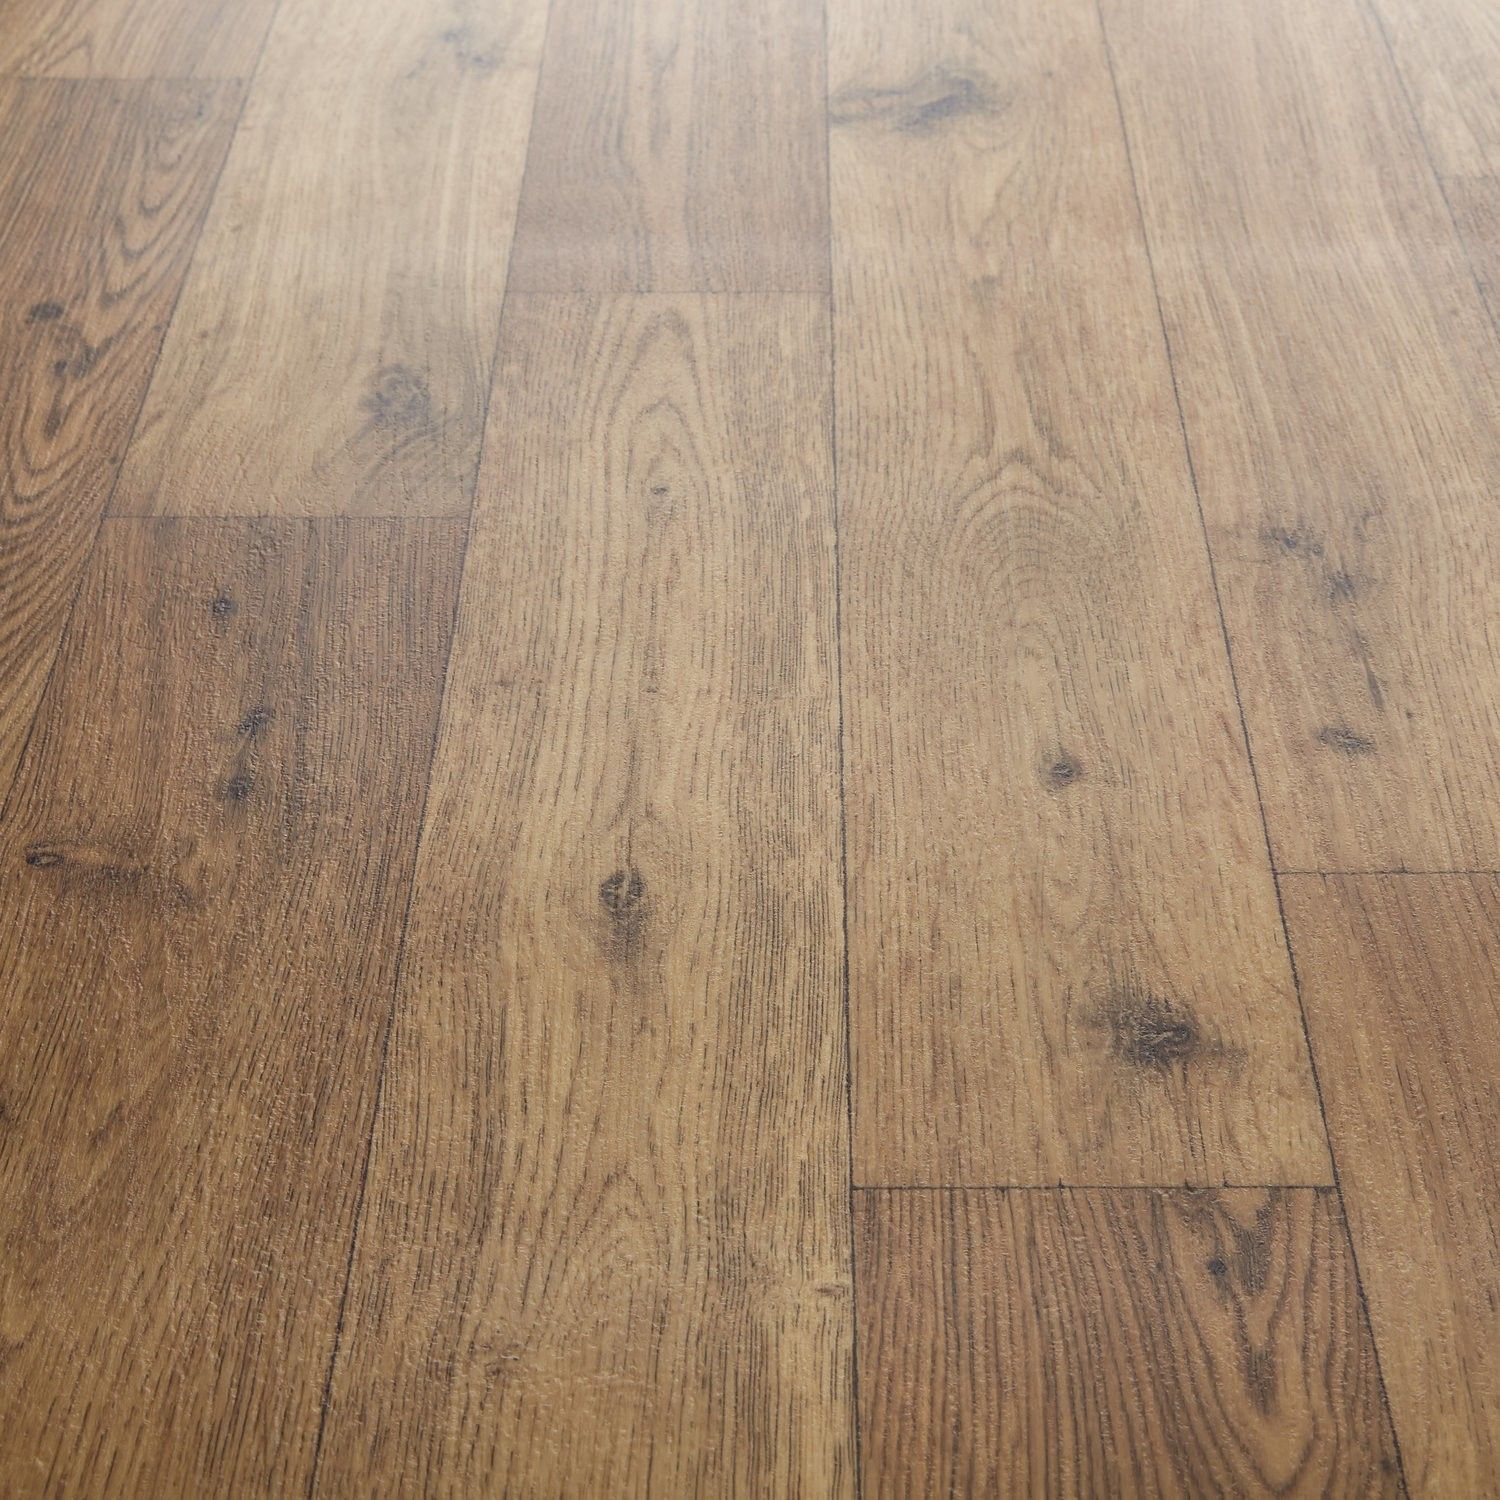 Rhino champion farmhouse antique wood effect vinyl flooring vinyl rhino champion farmhouse antique wood effect vinyl flooring dailygadgetfo Image collections